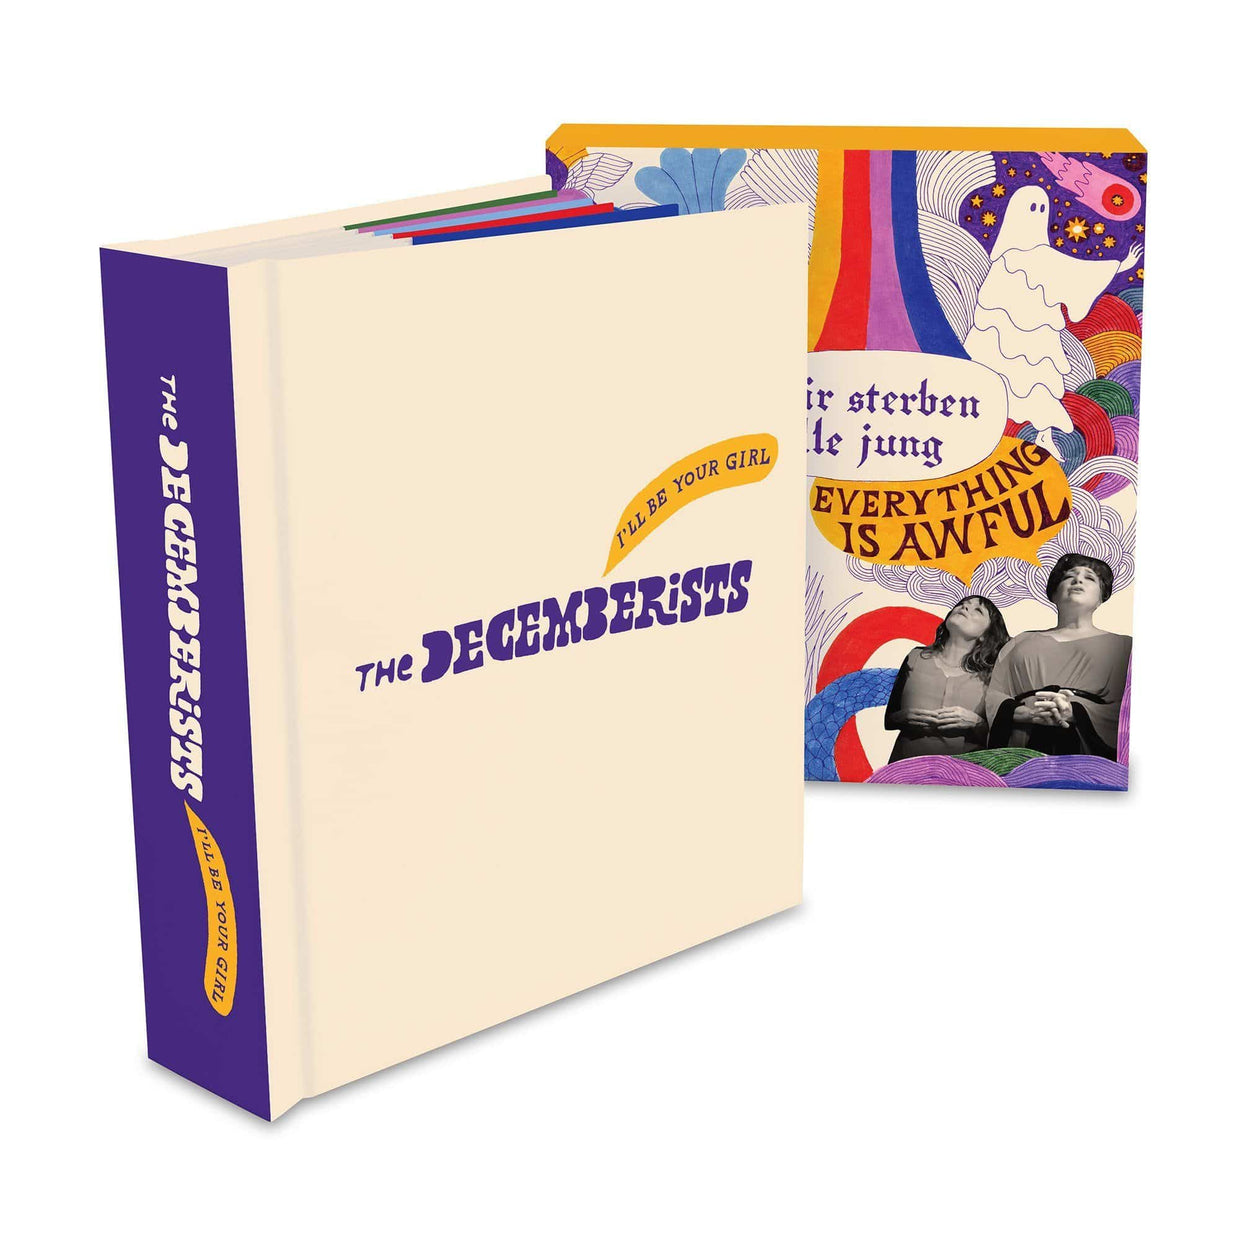 The Decemberists 'I'll Be Your Girl' Boxset: The Exploded Edition